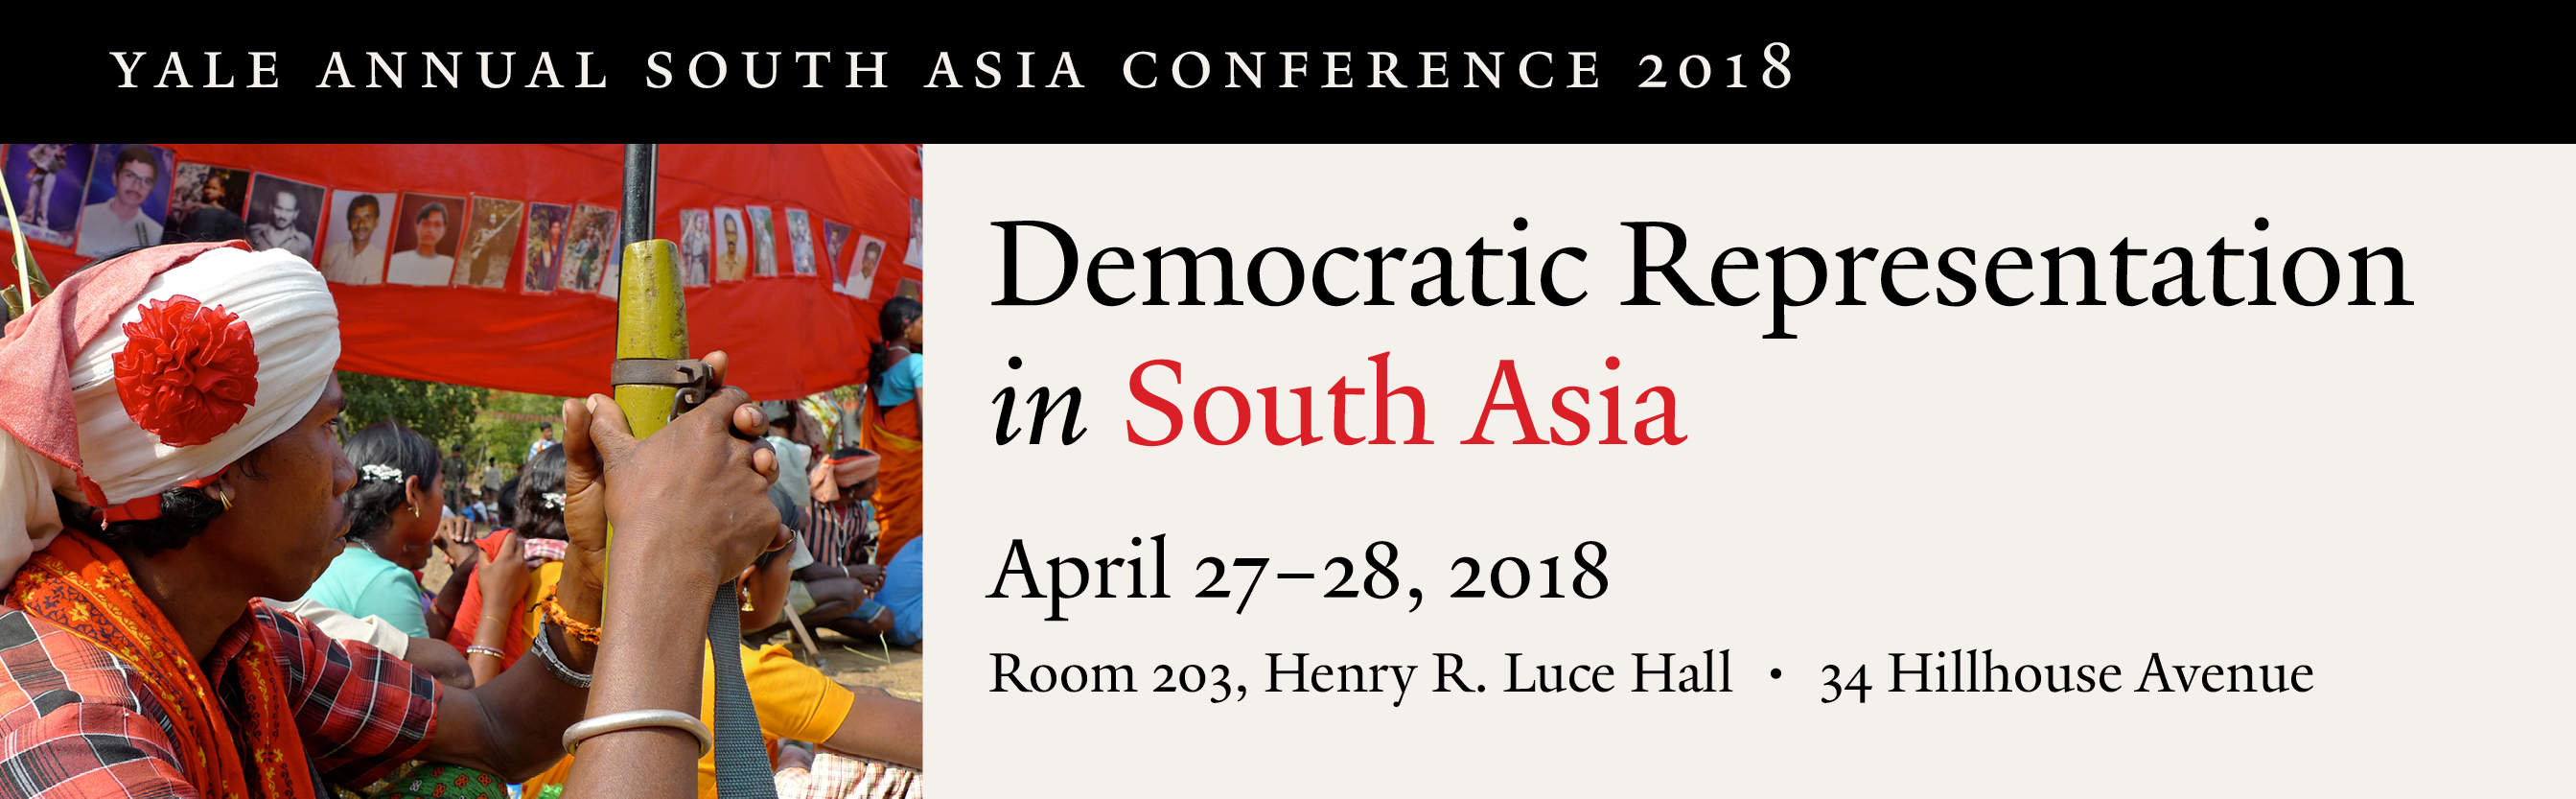 Yale Annual South Asia Conference 2018 - Democratic Representation in South Asia - April 27-28, 2018 Room 203, Henry R. Luce Hall - 34 Hill House Ave.